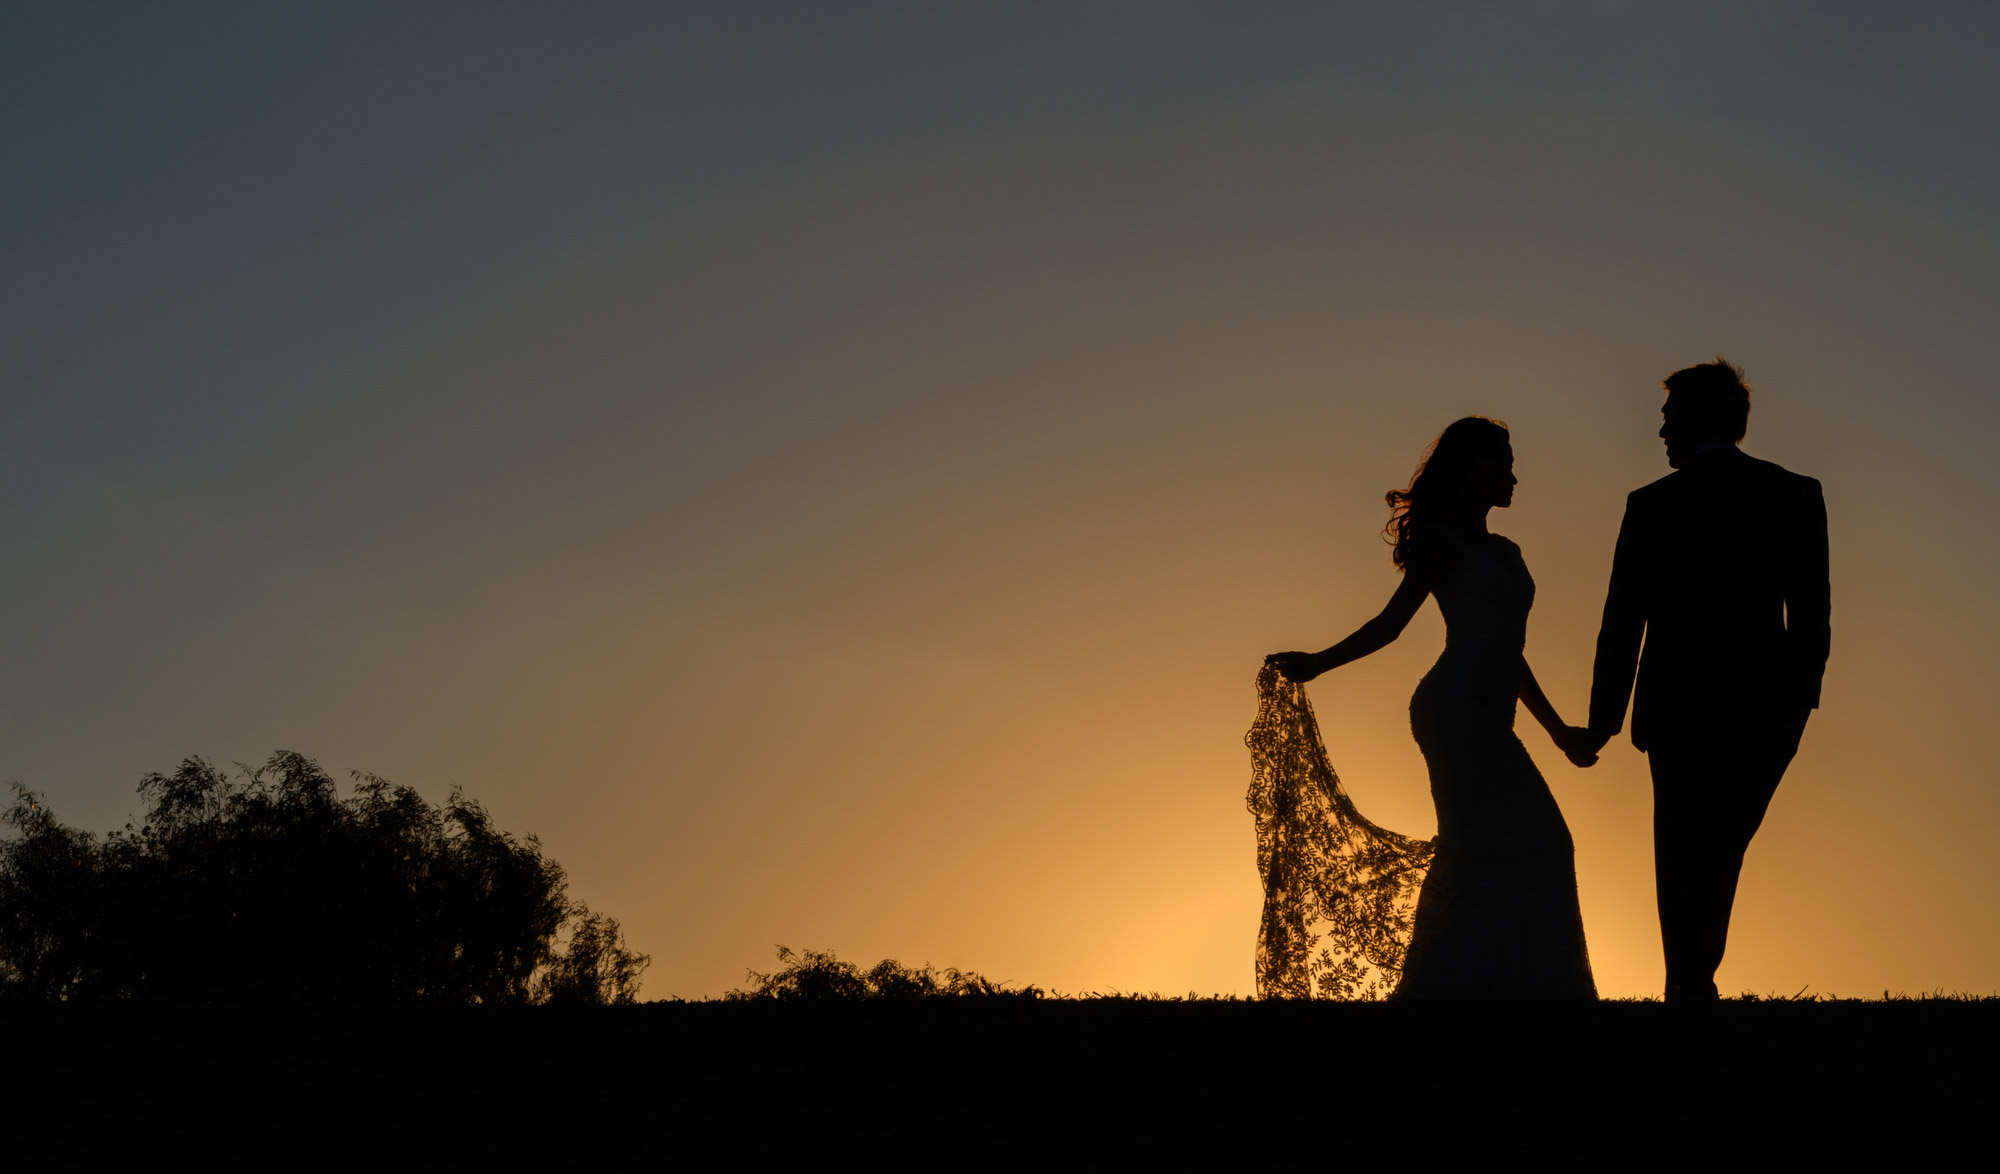 Silhouette photo of couple at sunset - photo by Jerry Ghionis